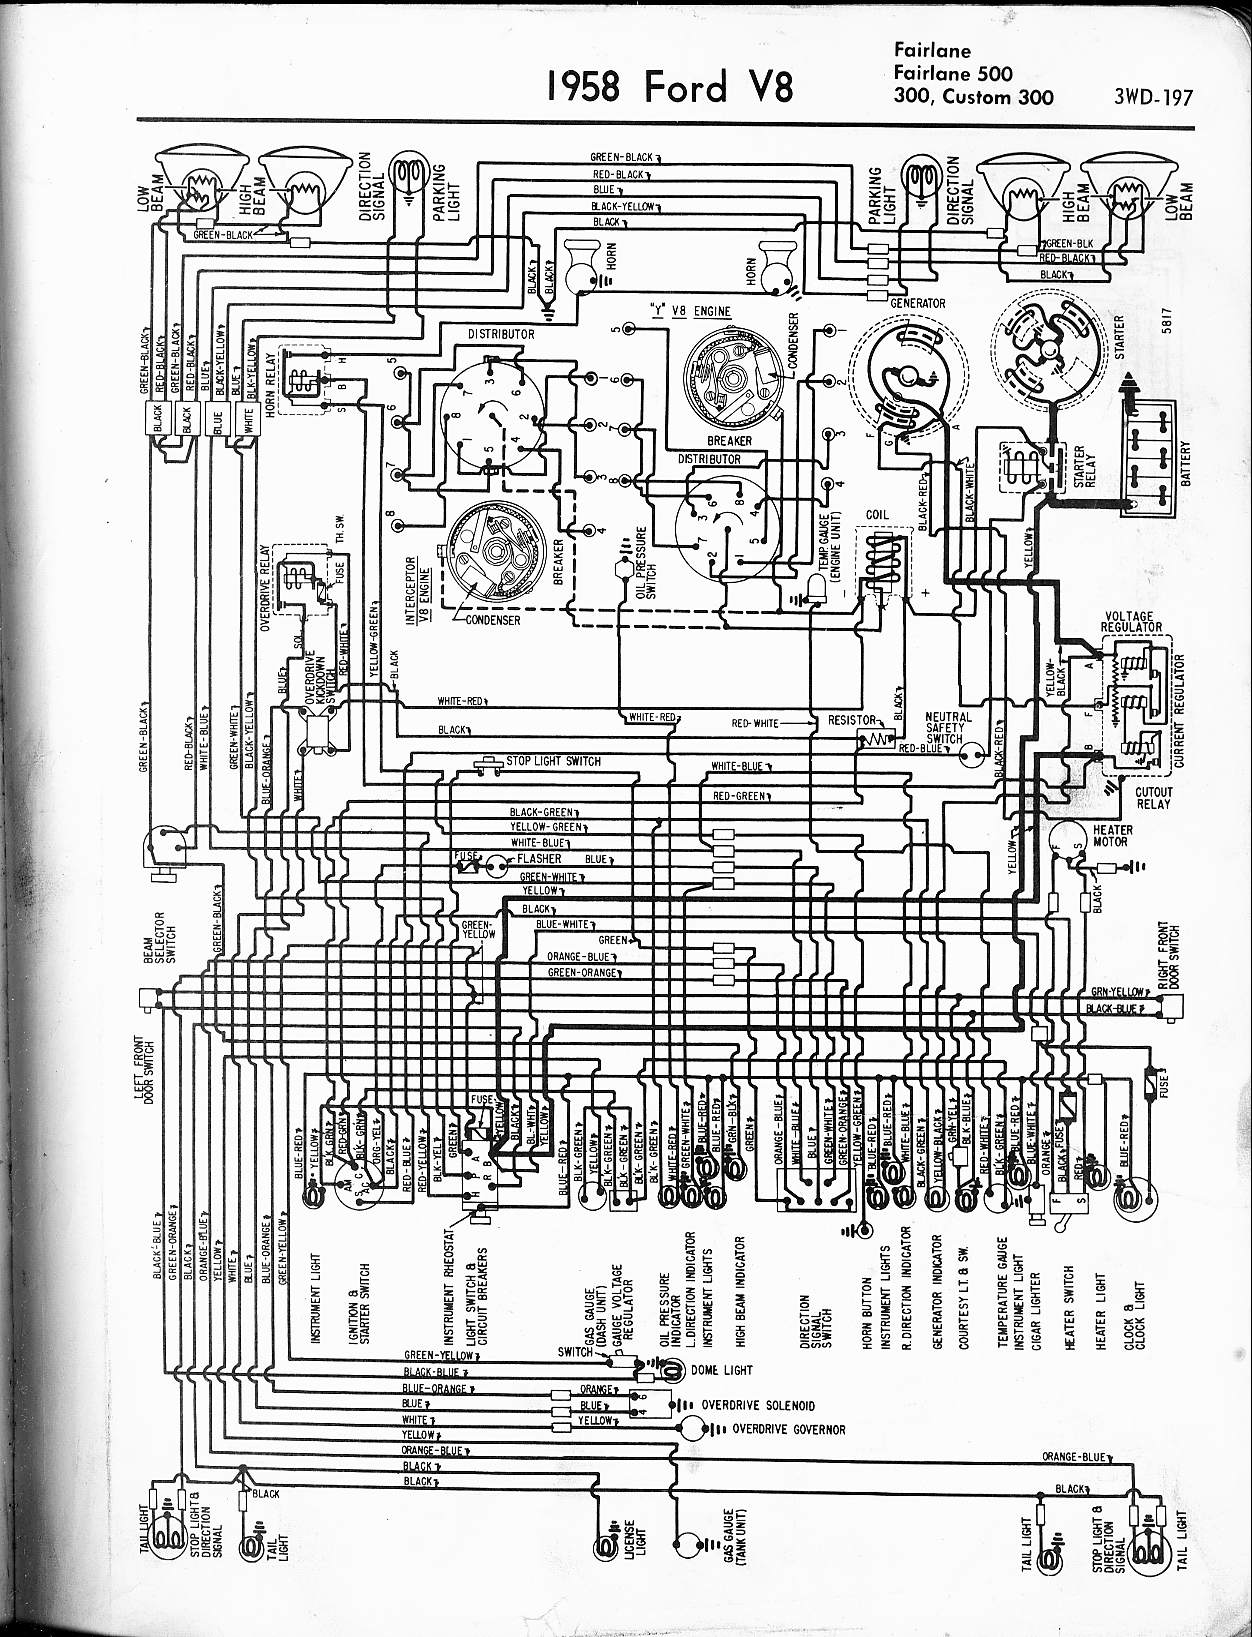 MWire5765 197 57 65 ford wiring diagrams  at eliteediting.co